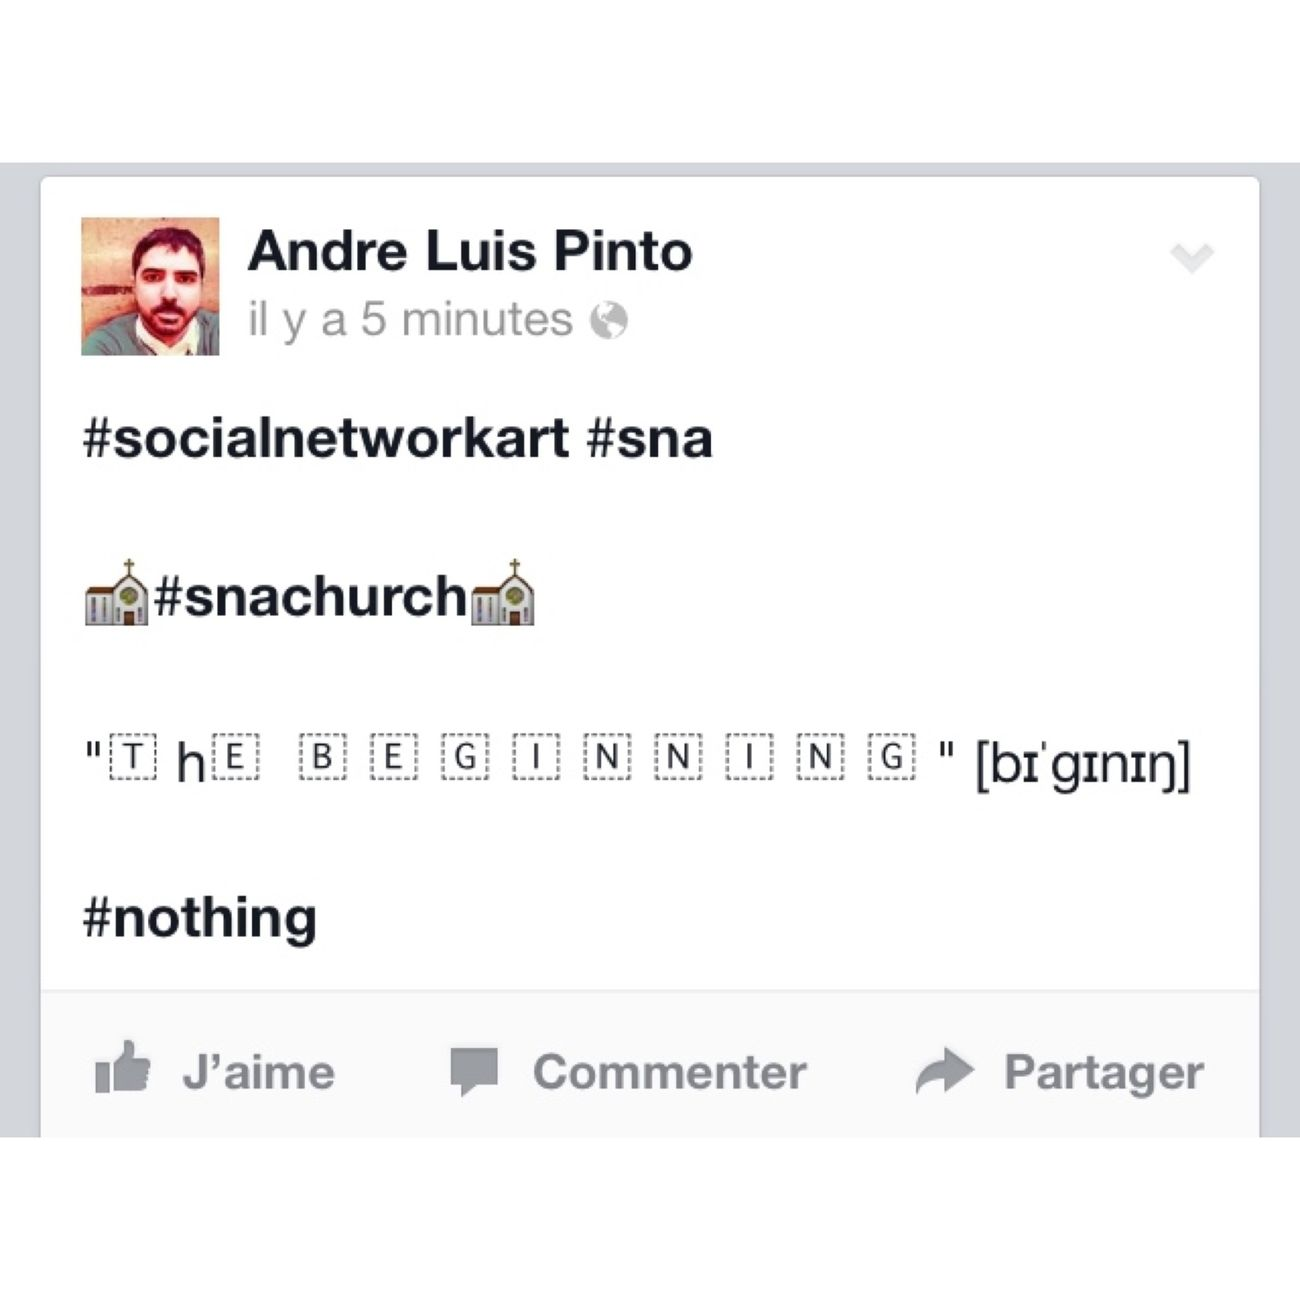 "Socialnetworkart Sna Snachurch ""The Beginning"" NOthIng"